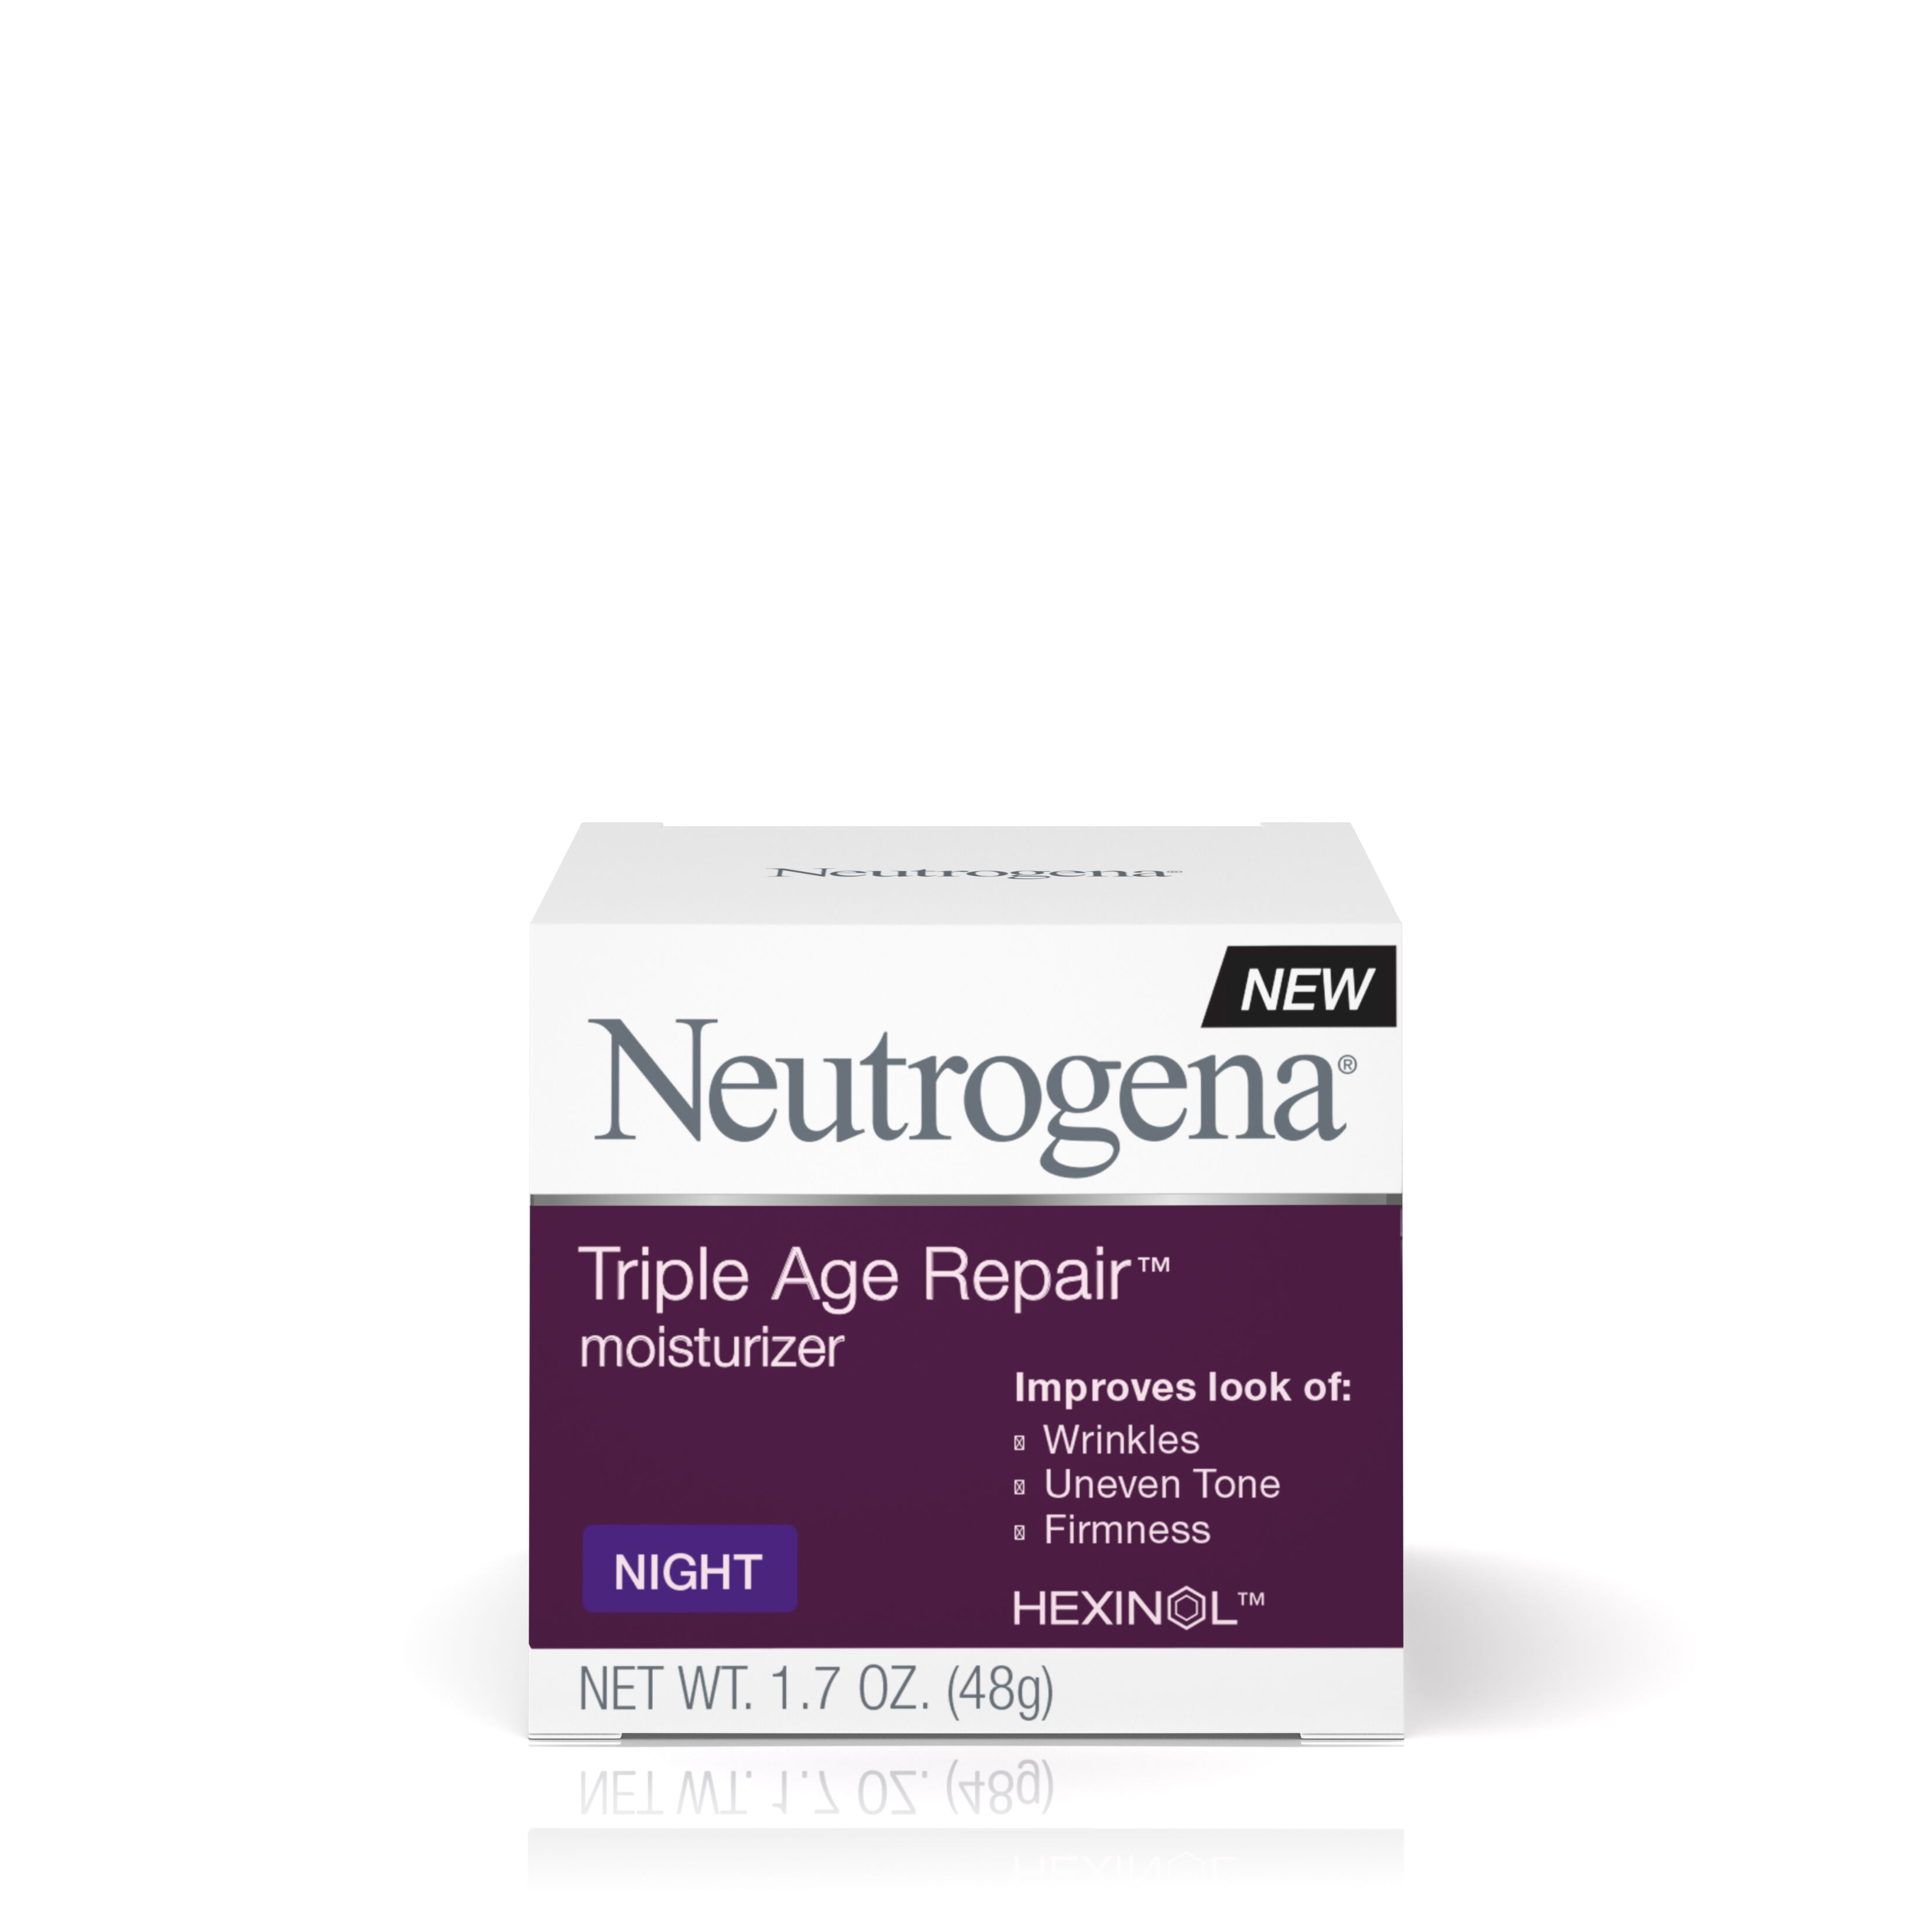 Neutrogena Triple Age Repair Moisturizer Night Cream  - 1.7 Oz, 3 Pack Neck Firming moisturizing lotion - restore the elasticity on your skin (120ml)